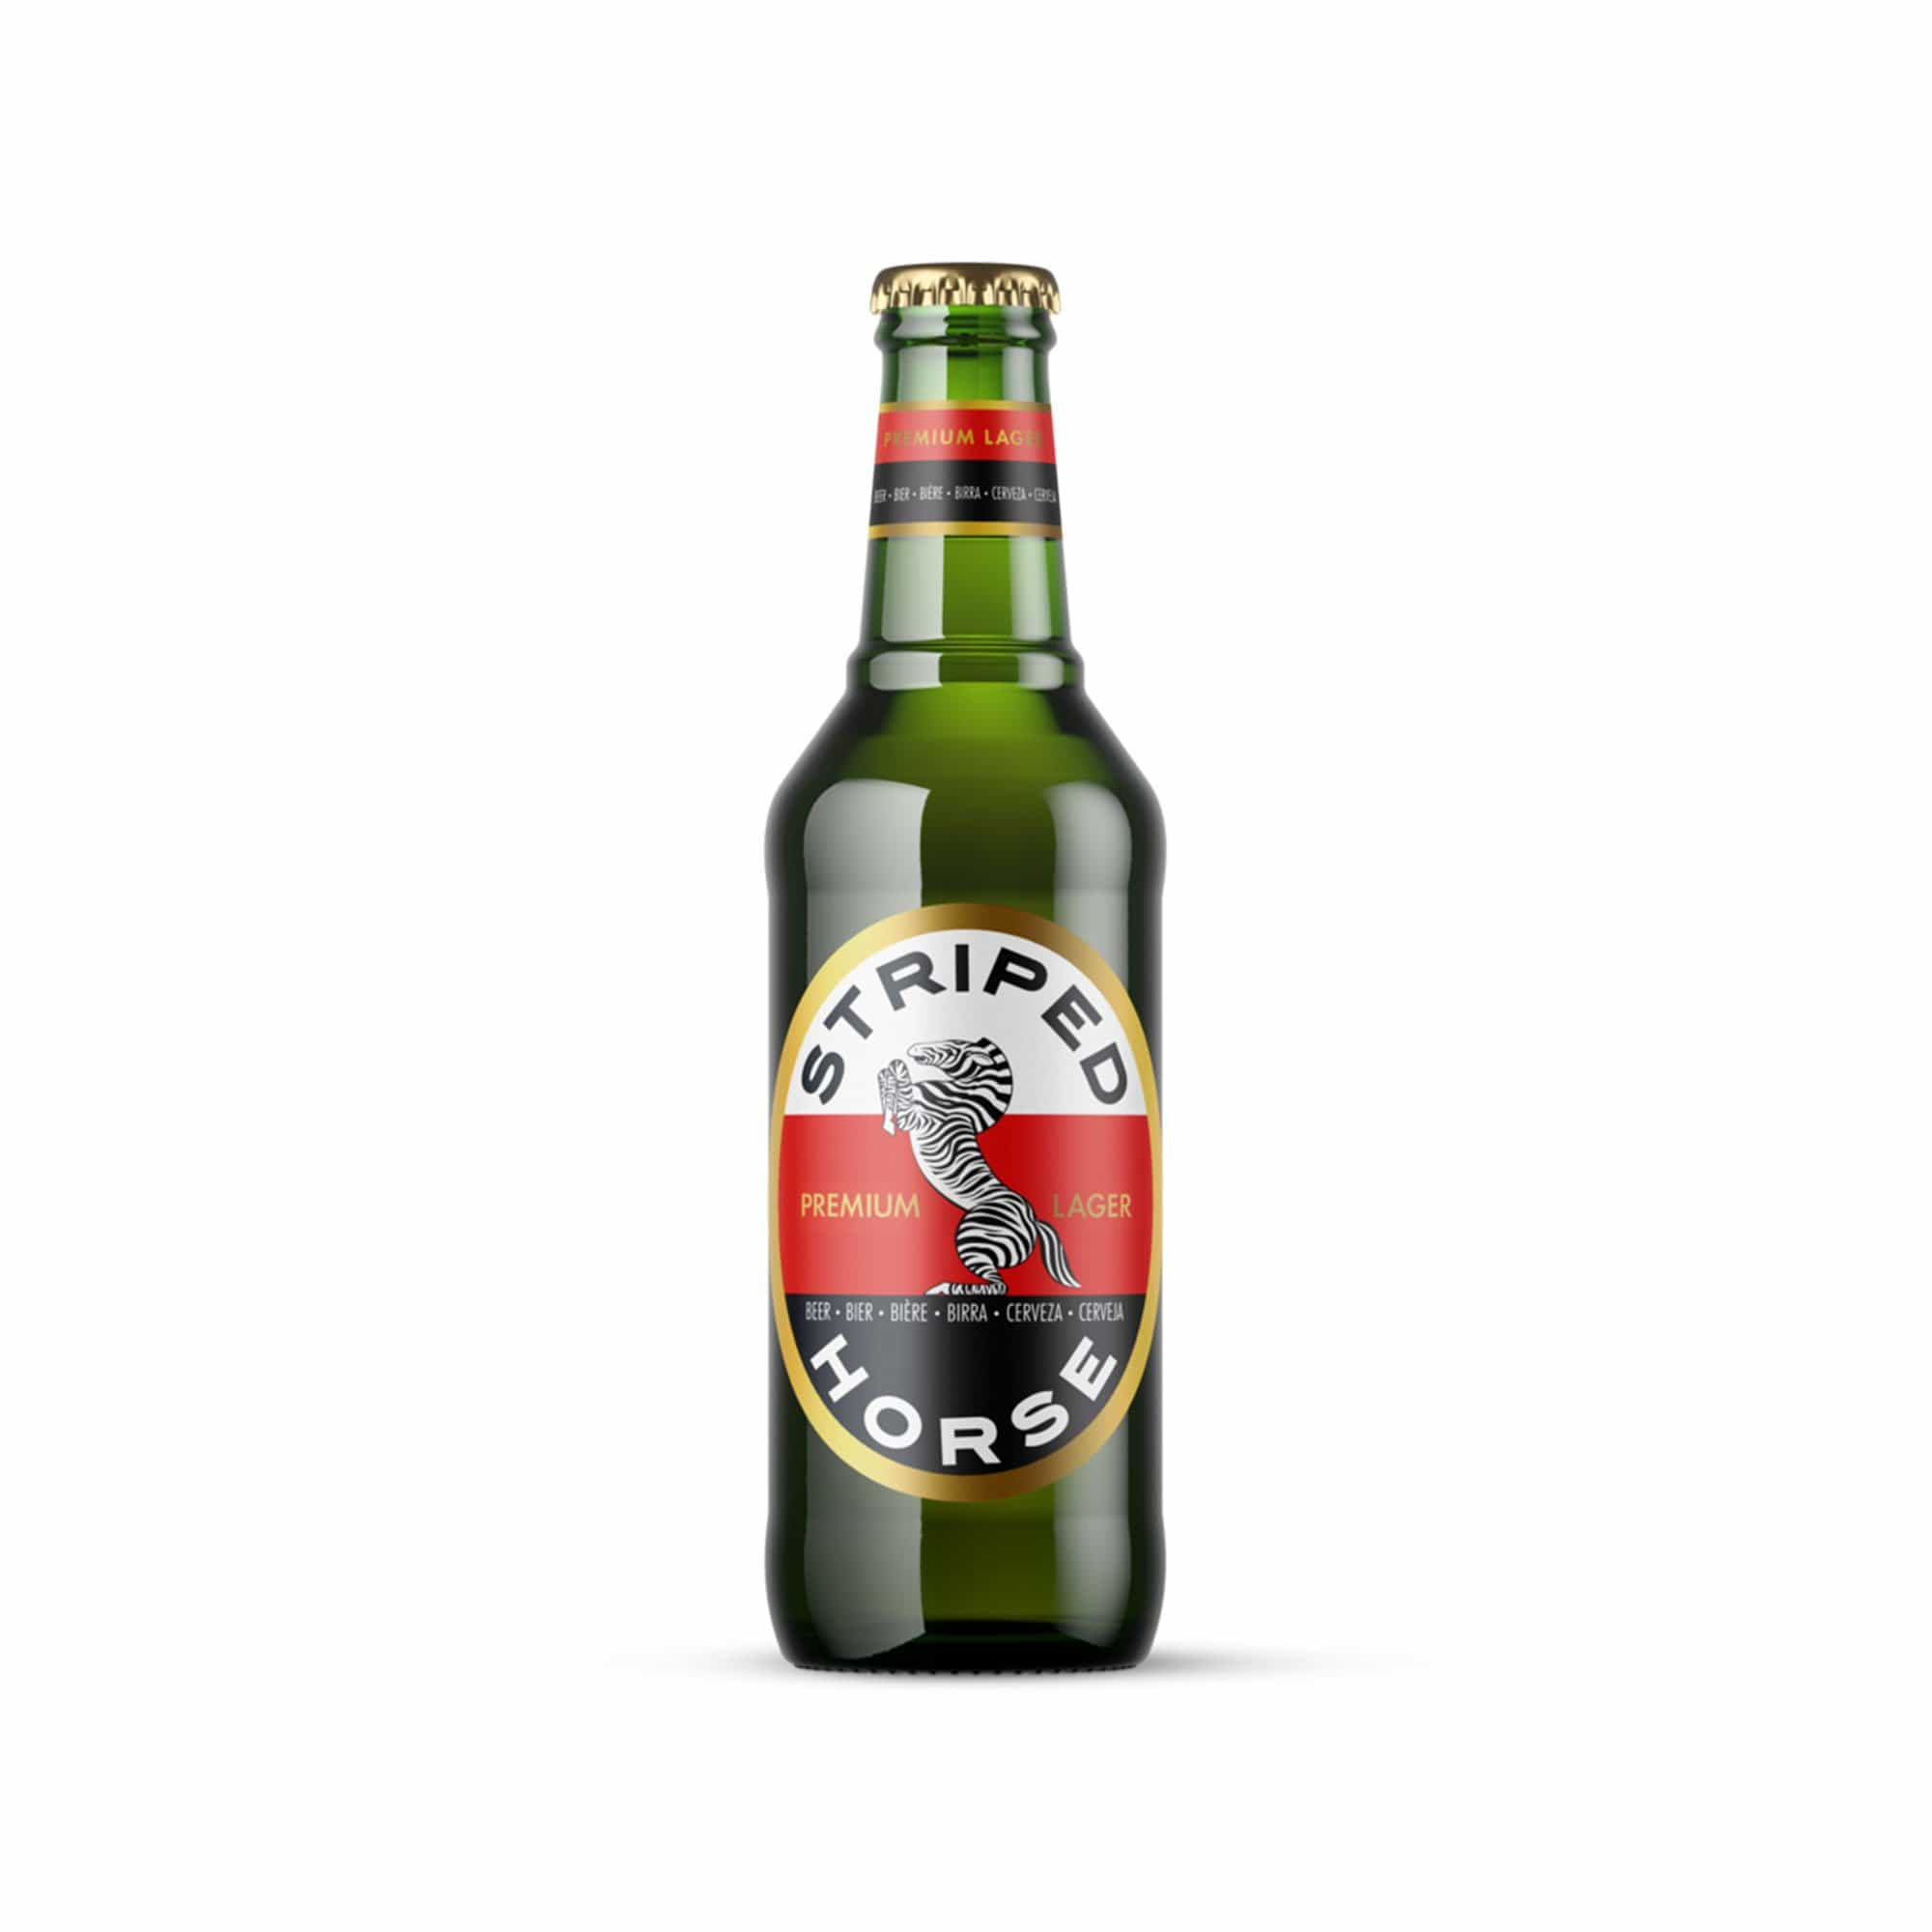 Beer Striped Horse Lager - 6 x 330ml south african wine - Brands From Africa